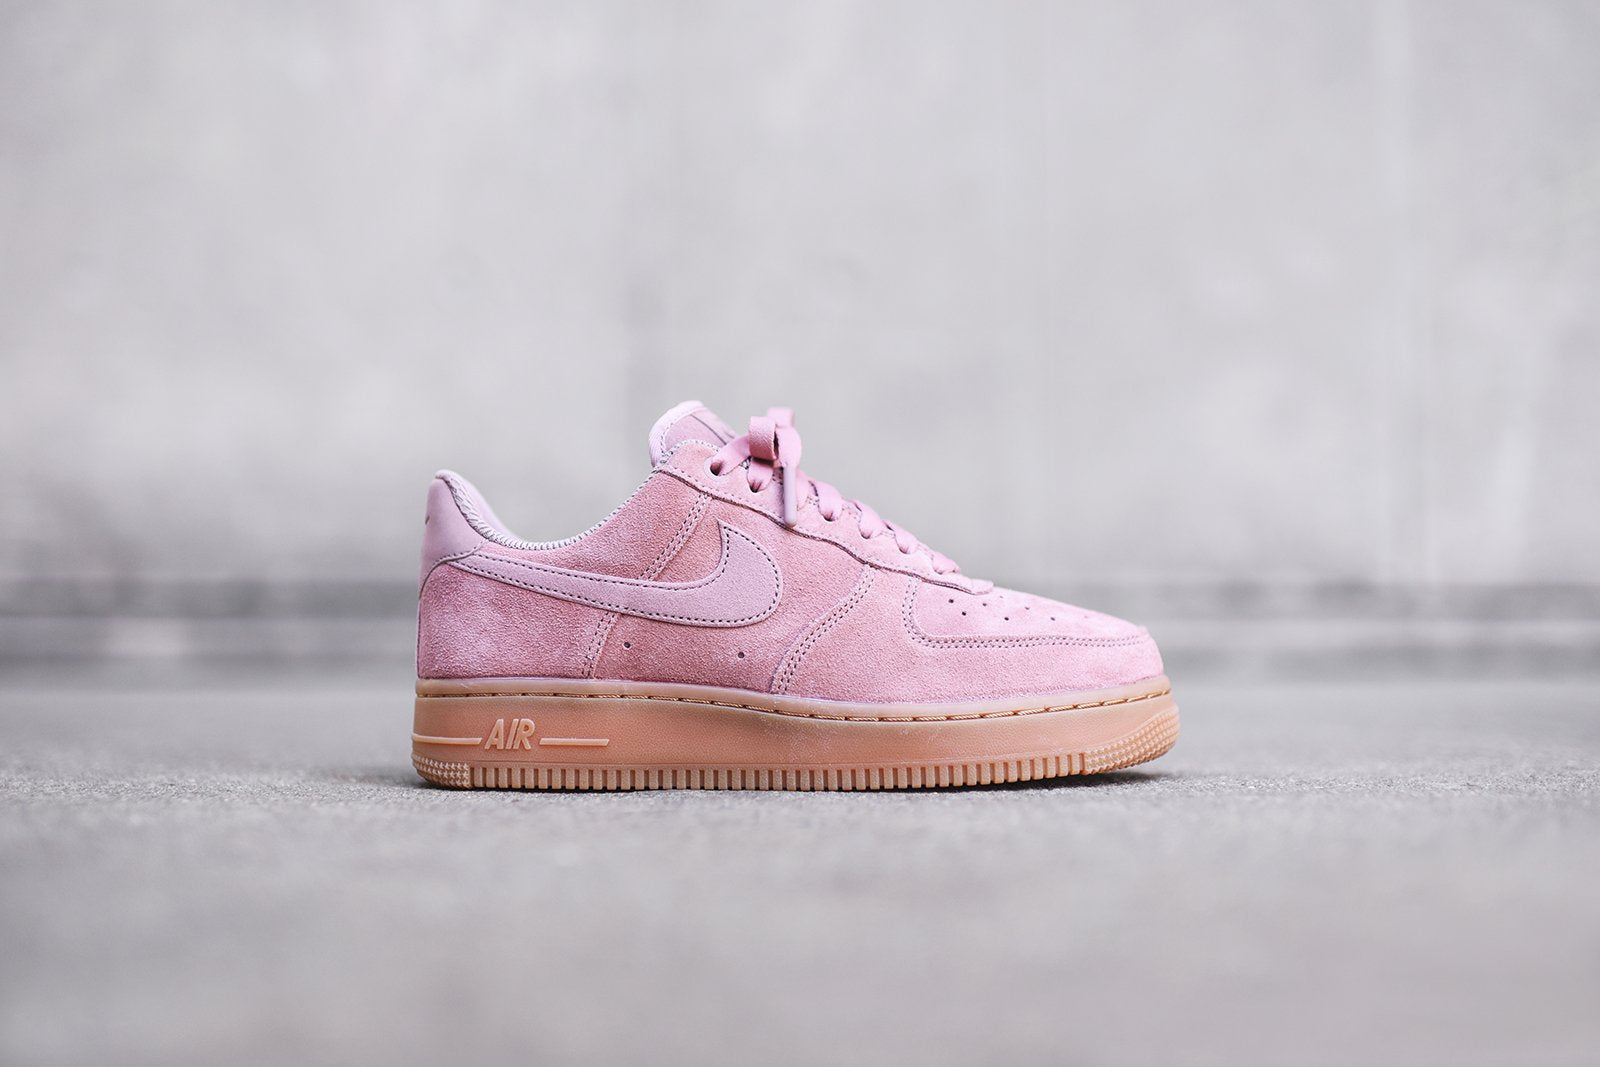 new concept 29c2c 07152 Nike Air Force 1 LV8. Pink   Gum